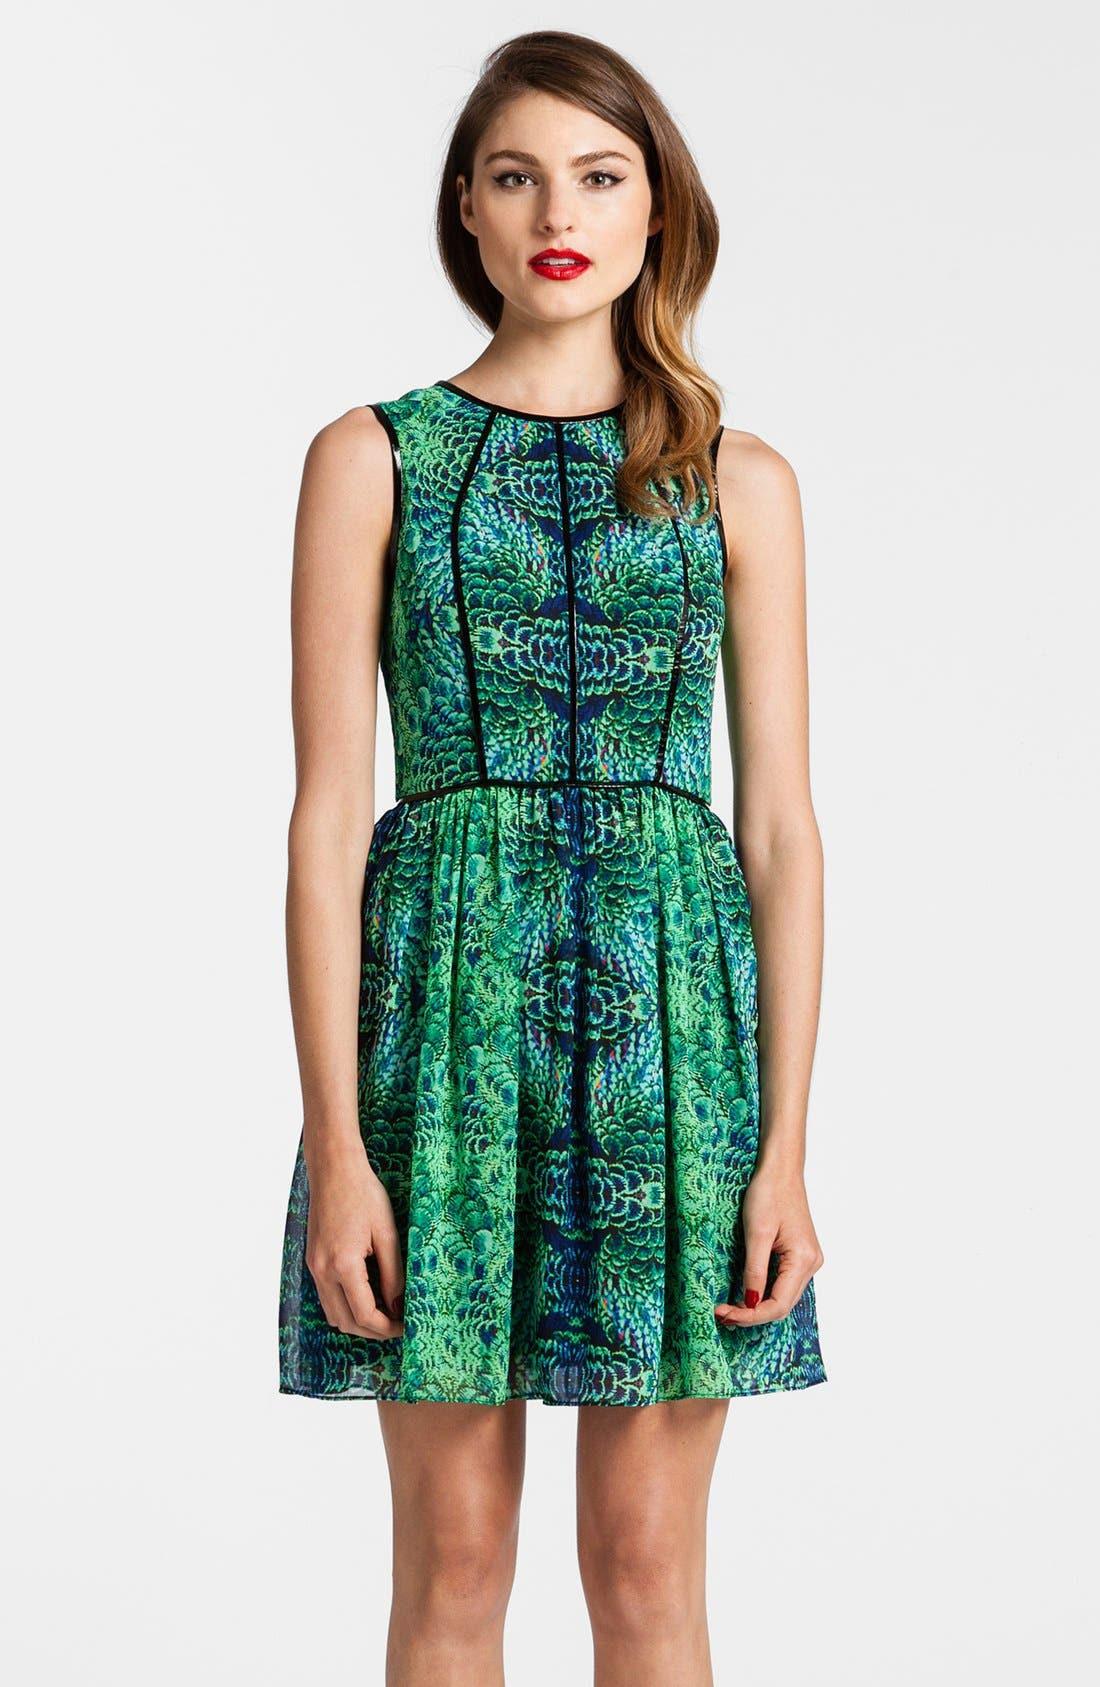 Alternate Image 1 Selected - Cynthia Steffe Faux Leather Piping Print Chiffon Fit & Flare Dress